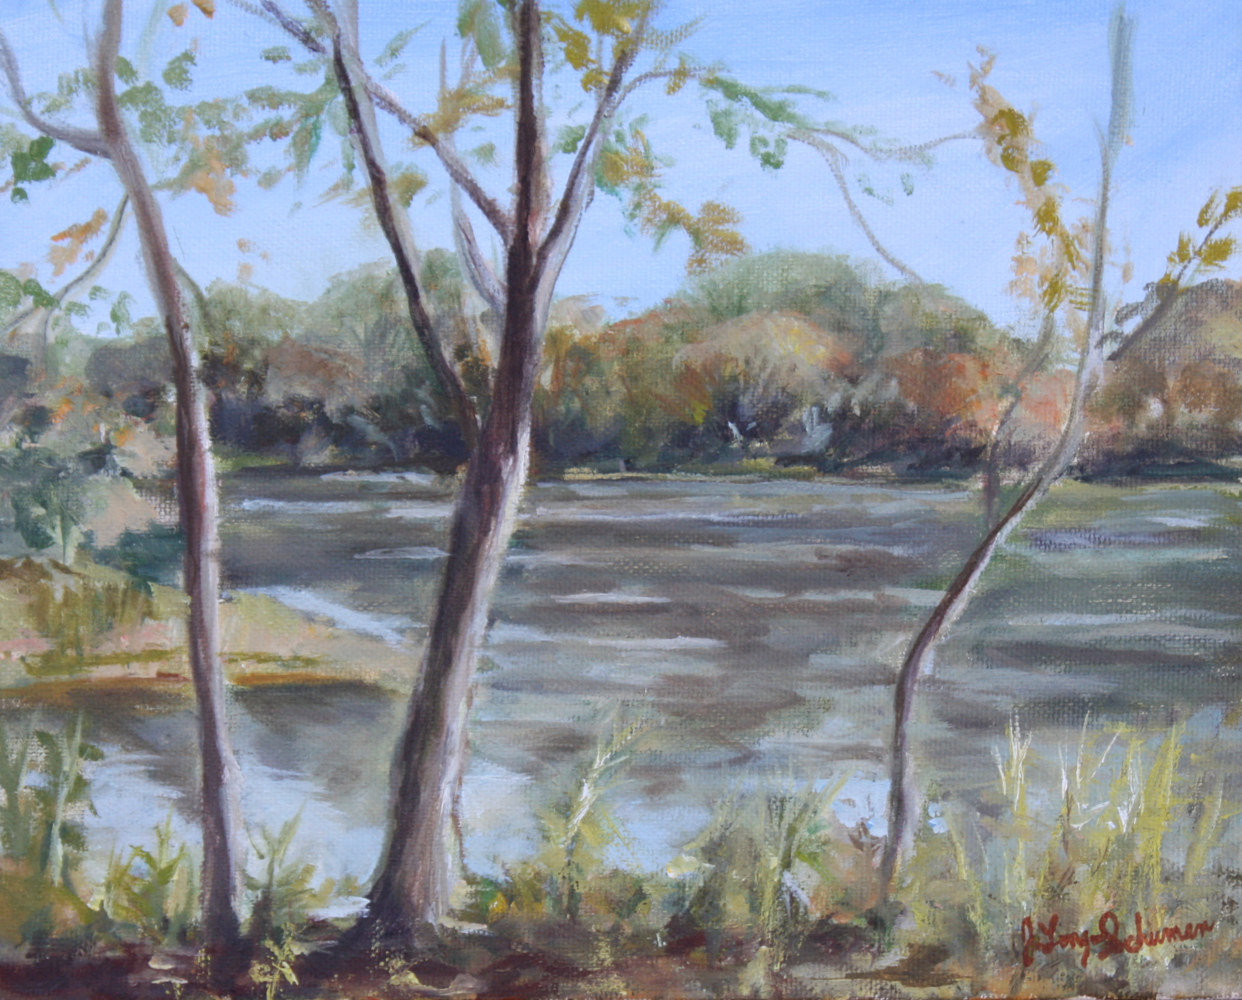 Oil painting Peconic River view by June Long-schuman